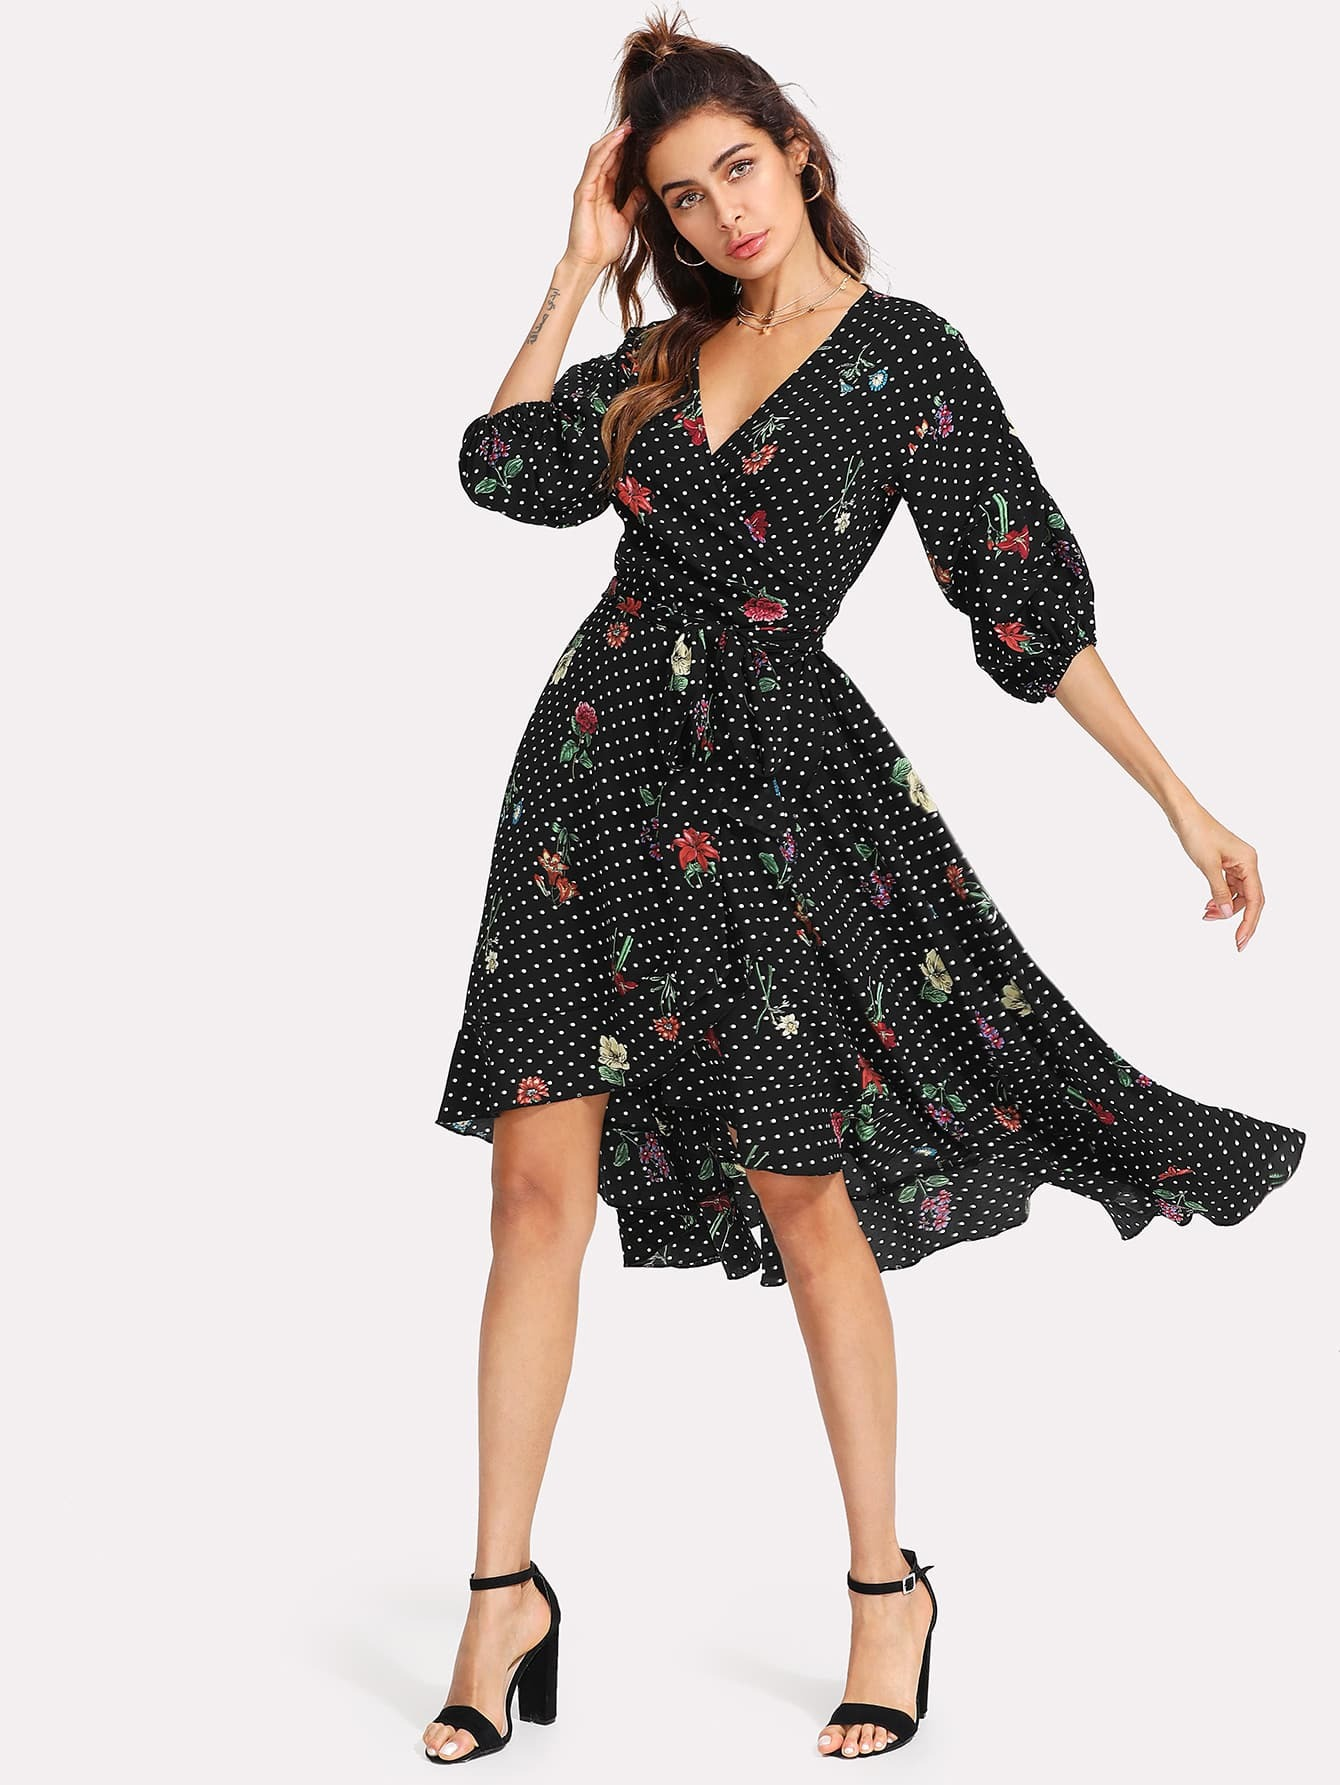 Gathered Sleeve Surplice Wrap Floral & Polka Dot Dress surplice wrap floral dress